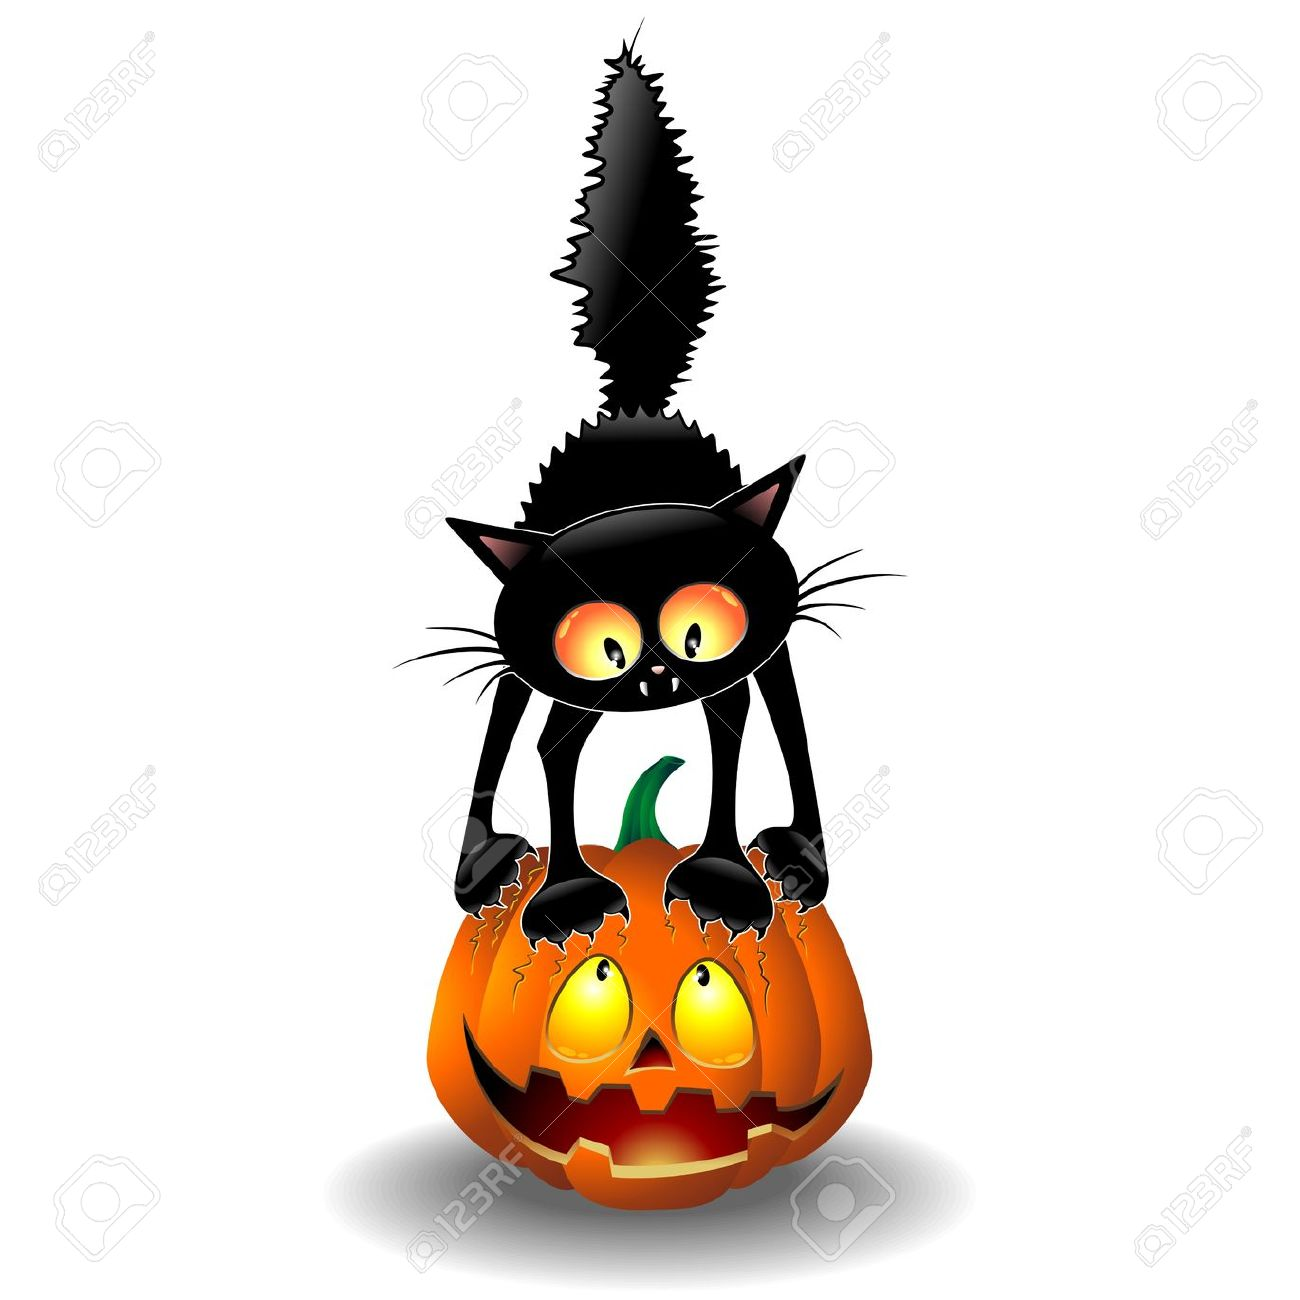 hight resolution of 1300x1300 cat pumpkin clipart 1300x1300 cat pumpkin clipart 1300x1390 halloween horror